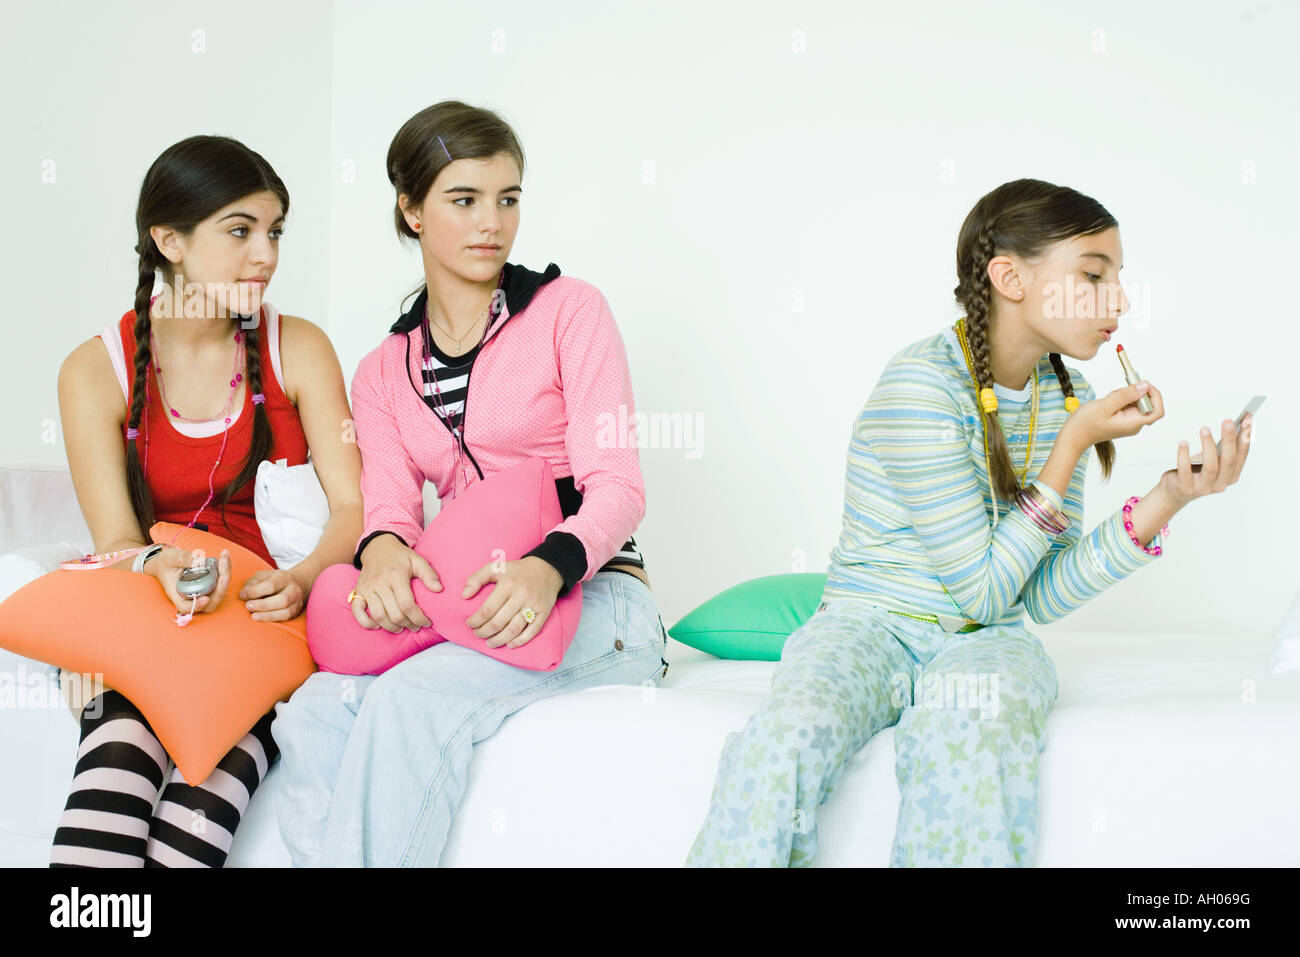 Three young female friends sitting on sofa, two watching younger girl putting on make-up - Stock Image